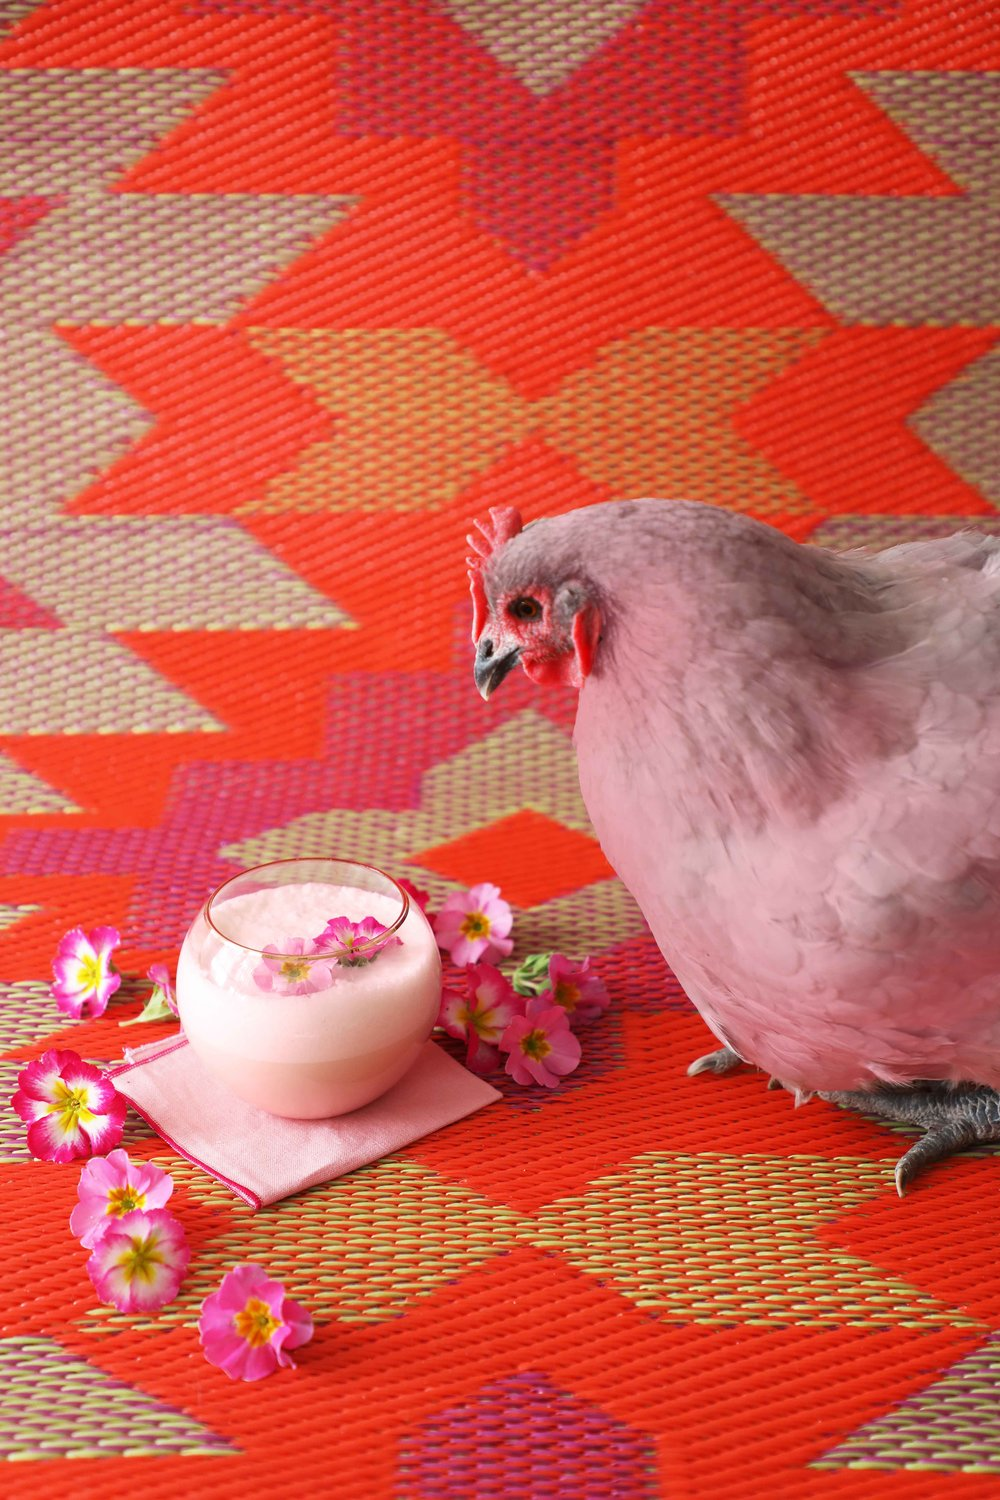 Pink Nog because Christmas | drinkingwithchickens.com #eggnog